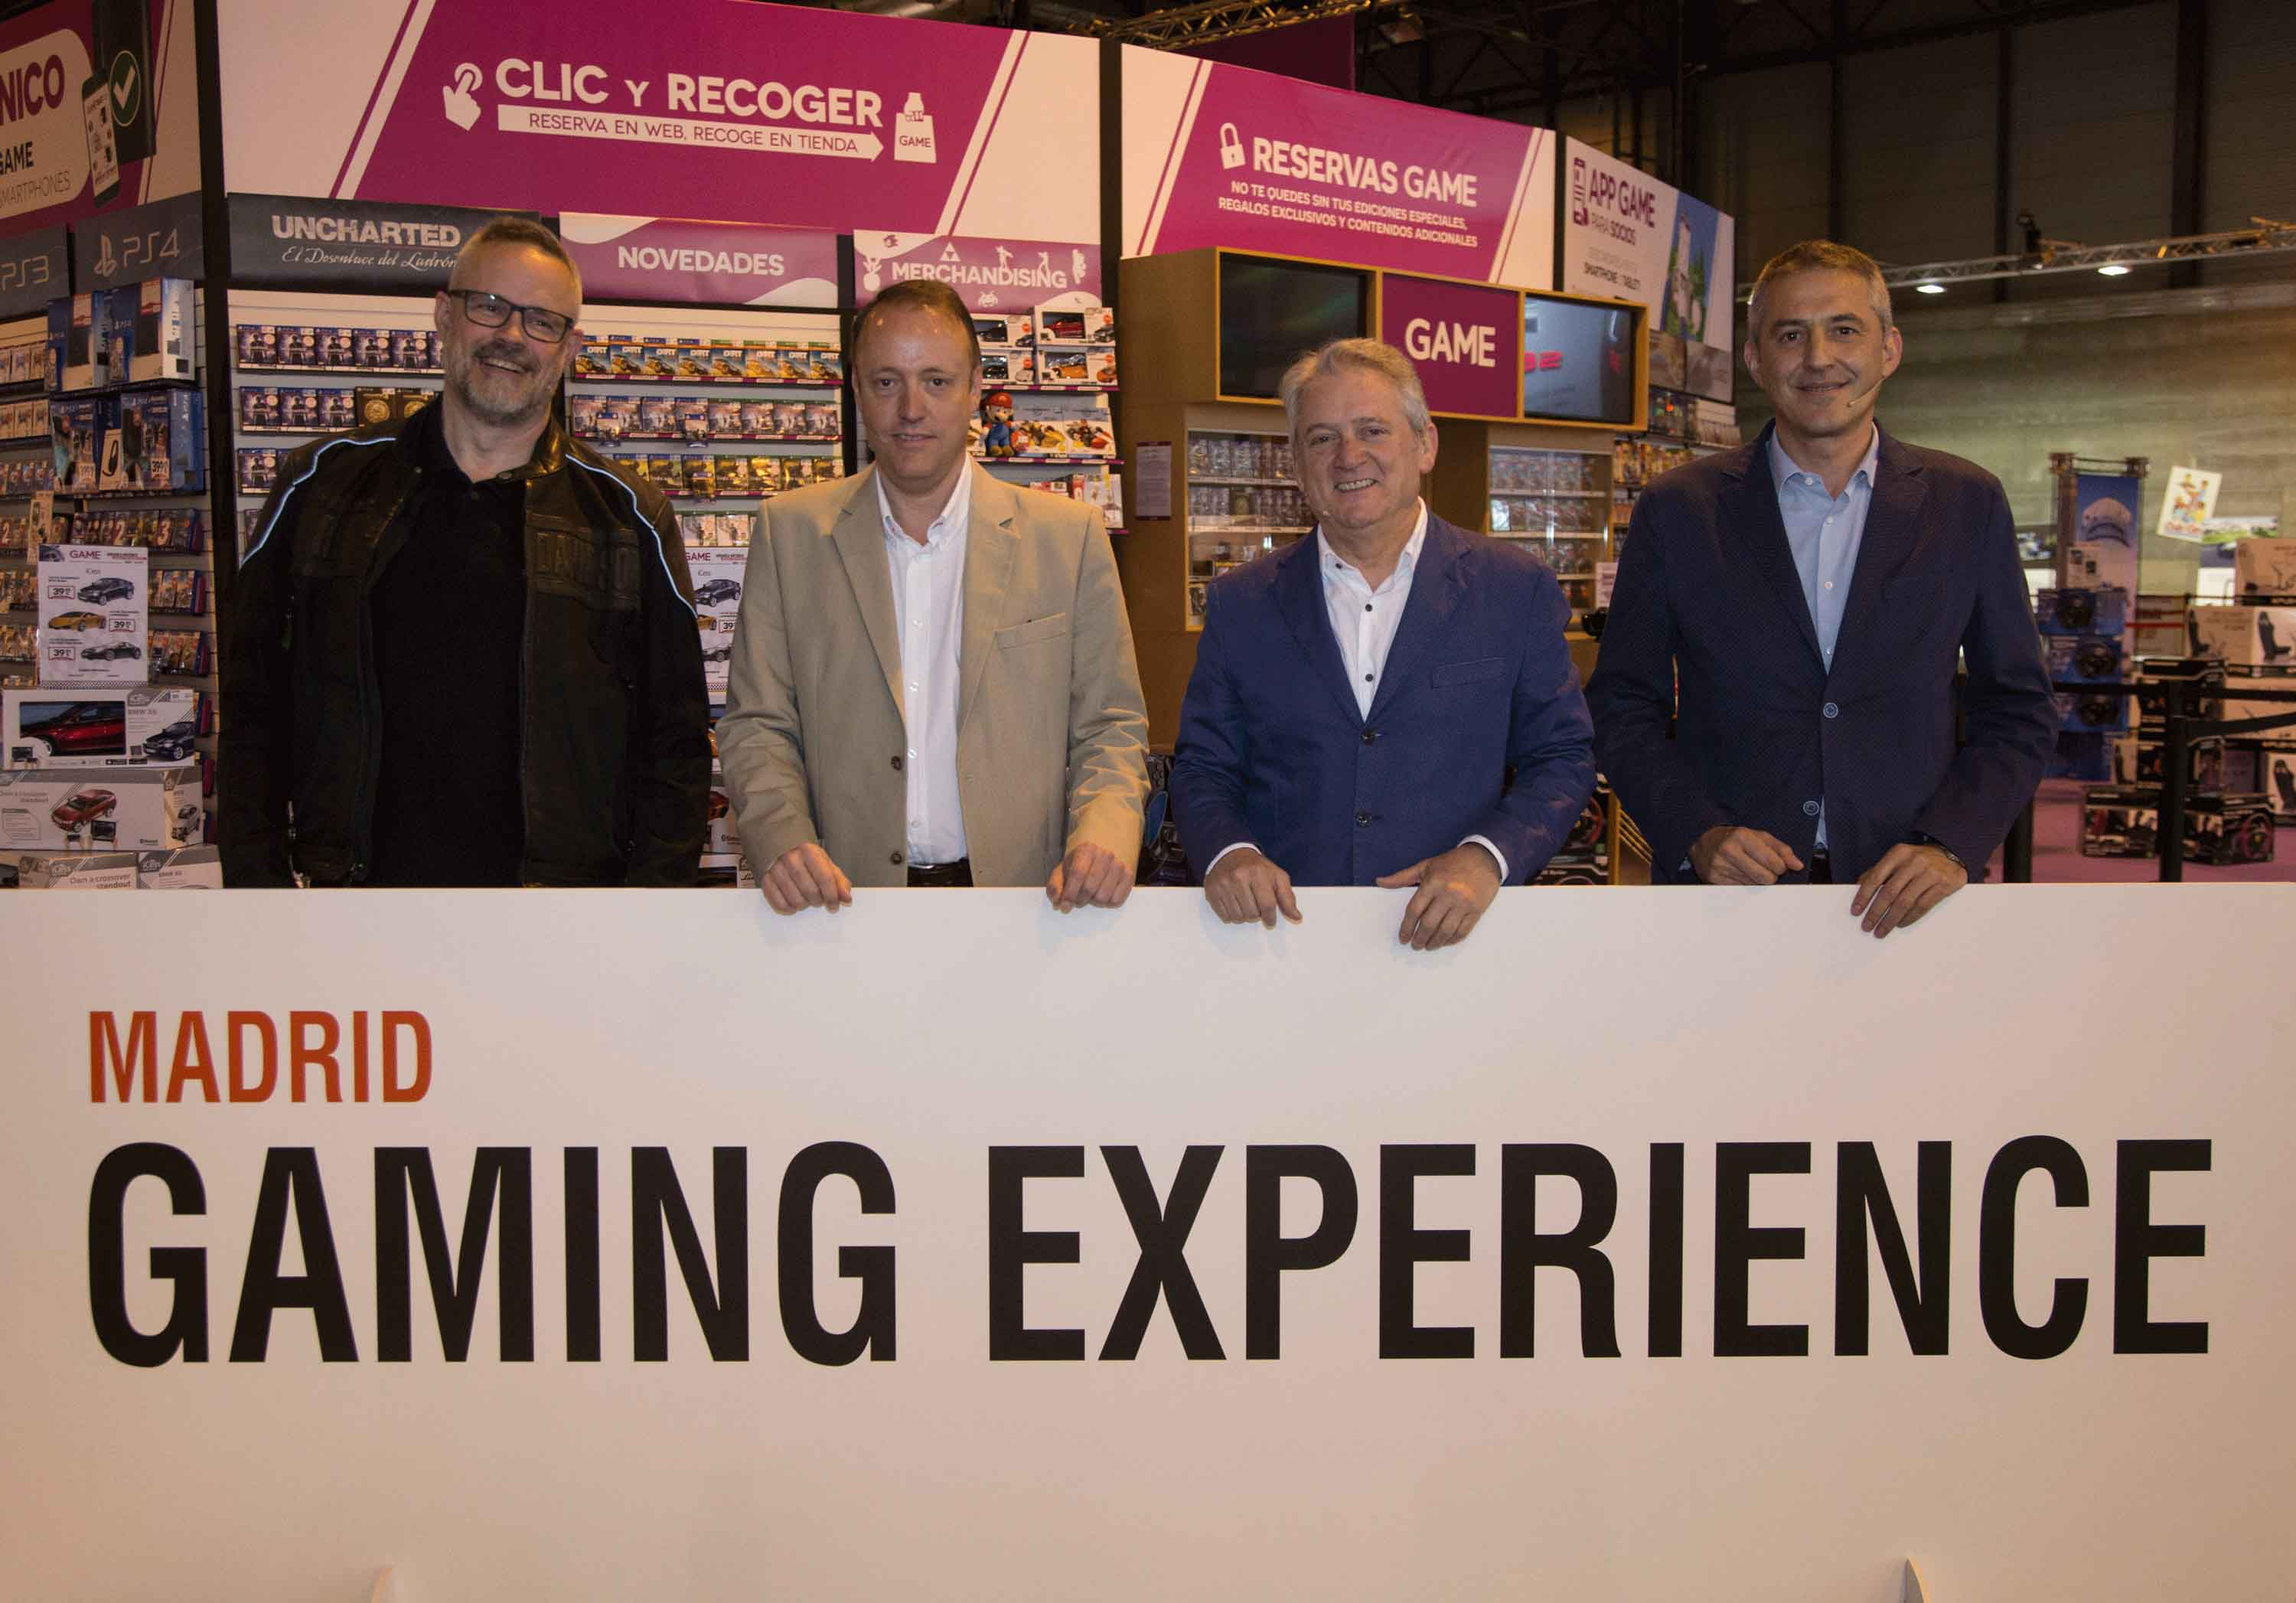 Madrid Gaming Experiencie IFEMA Game eSports